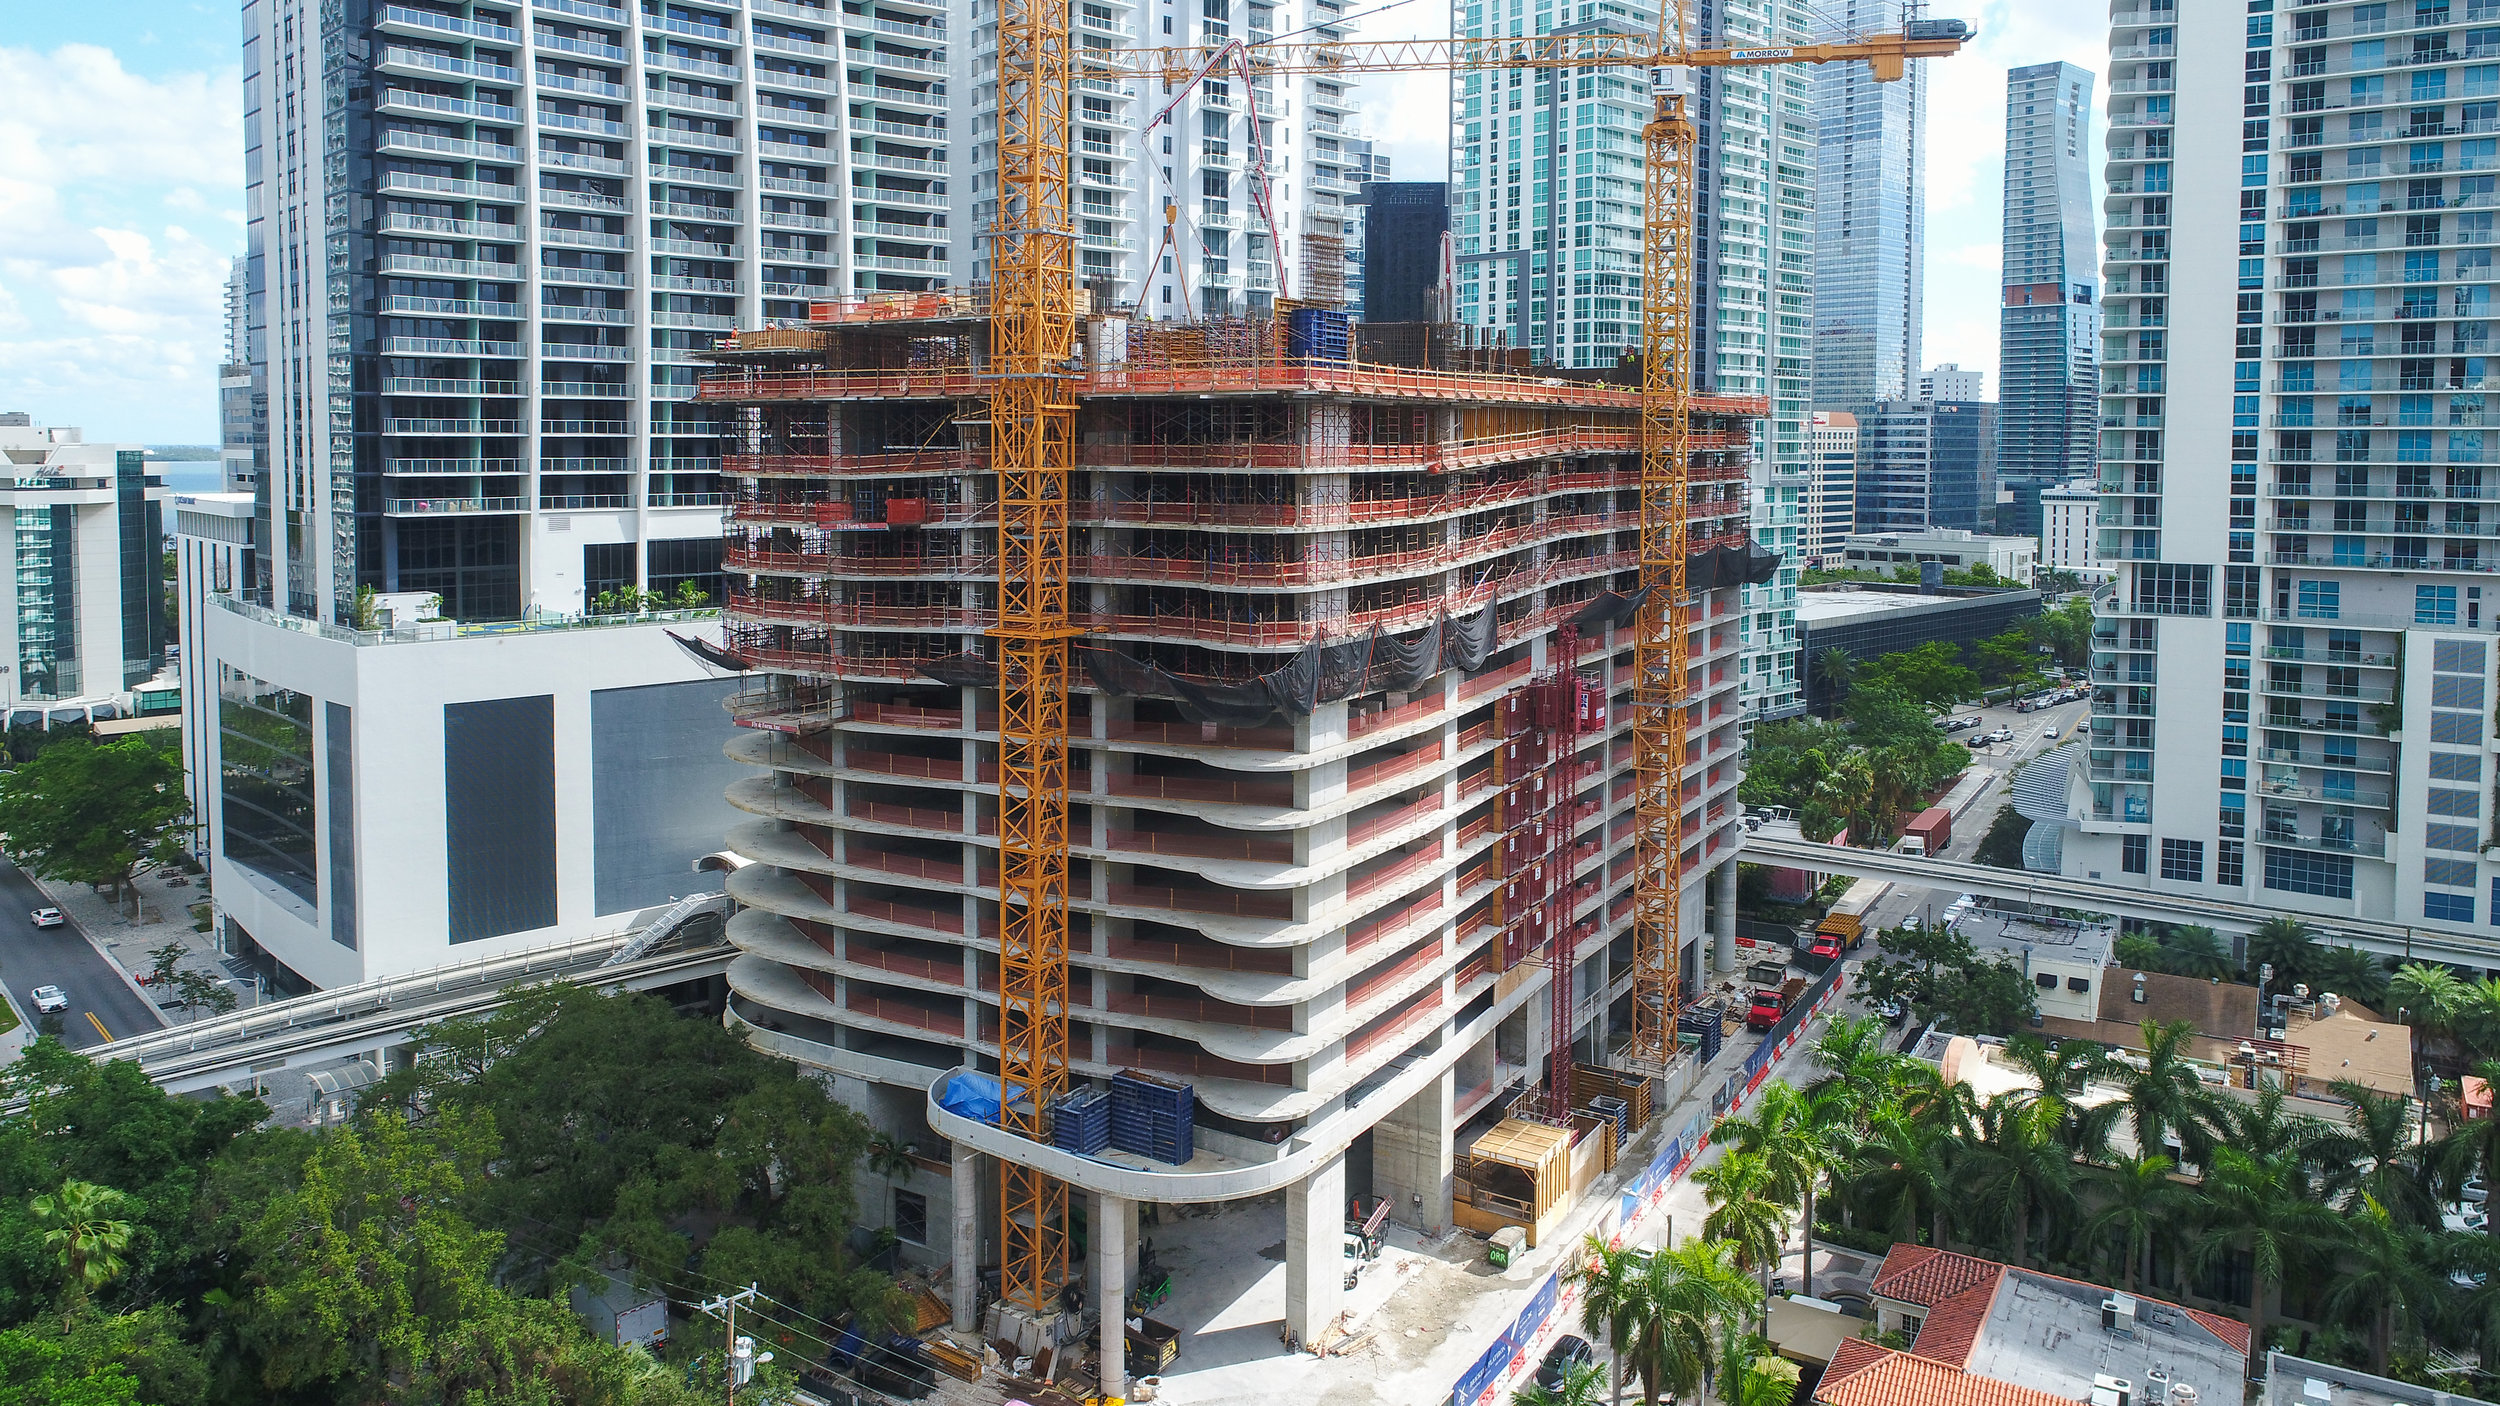 Construction Update: Ugo Colombo's Brickell Flatiron Releases New Drone Video As Vertical Rise Reaches 17th Floor